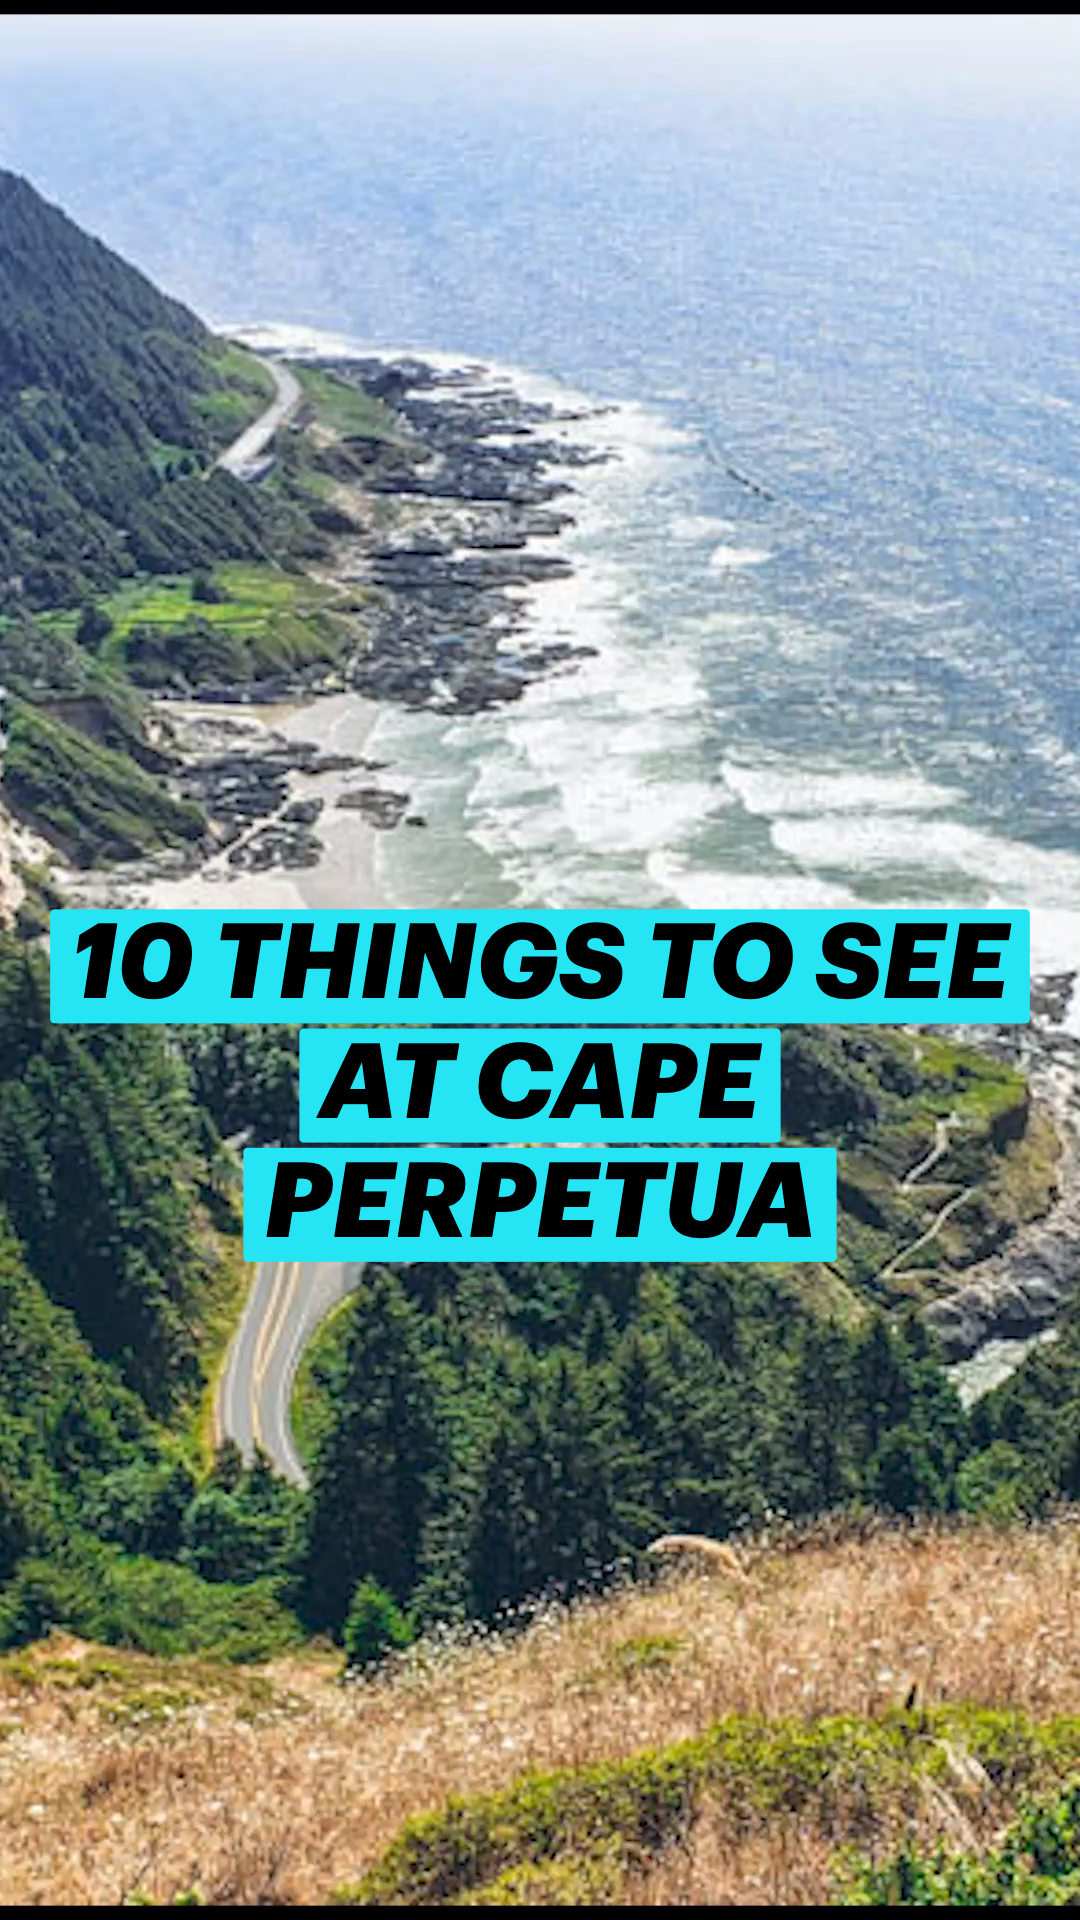 10 THINGS TO SEE AT CAPE PERPETUA